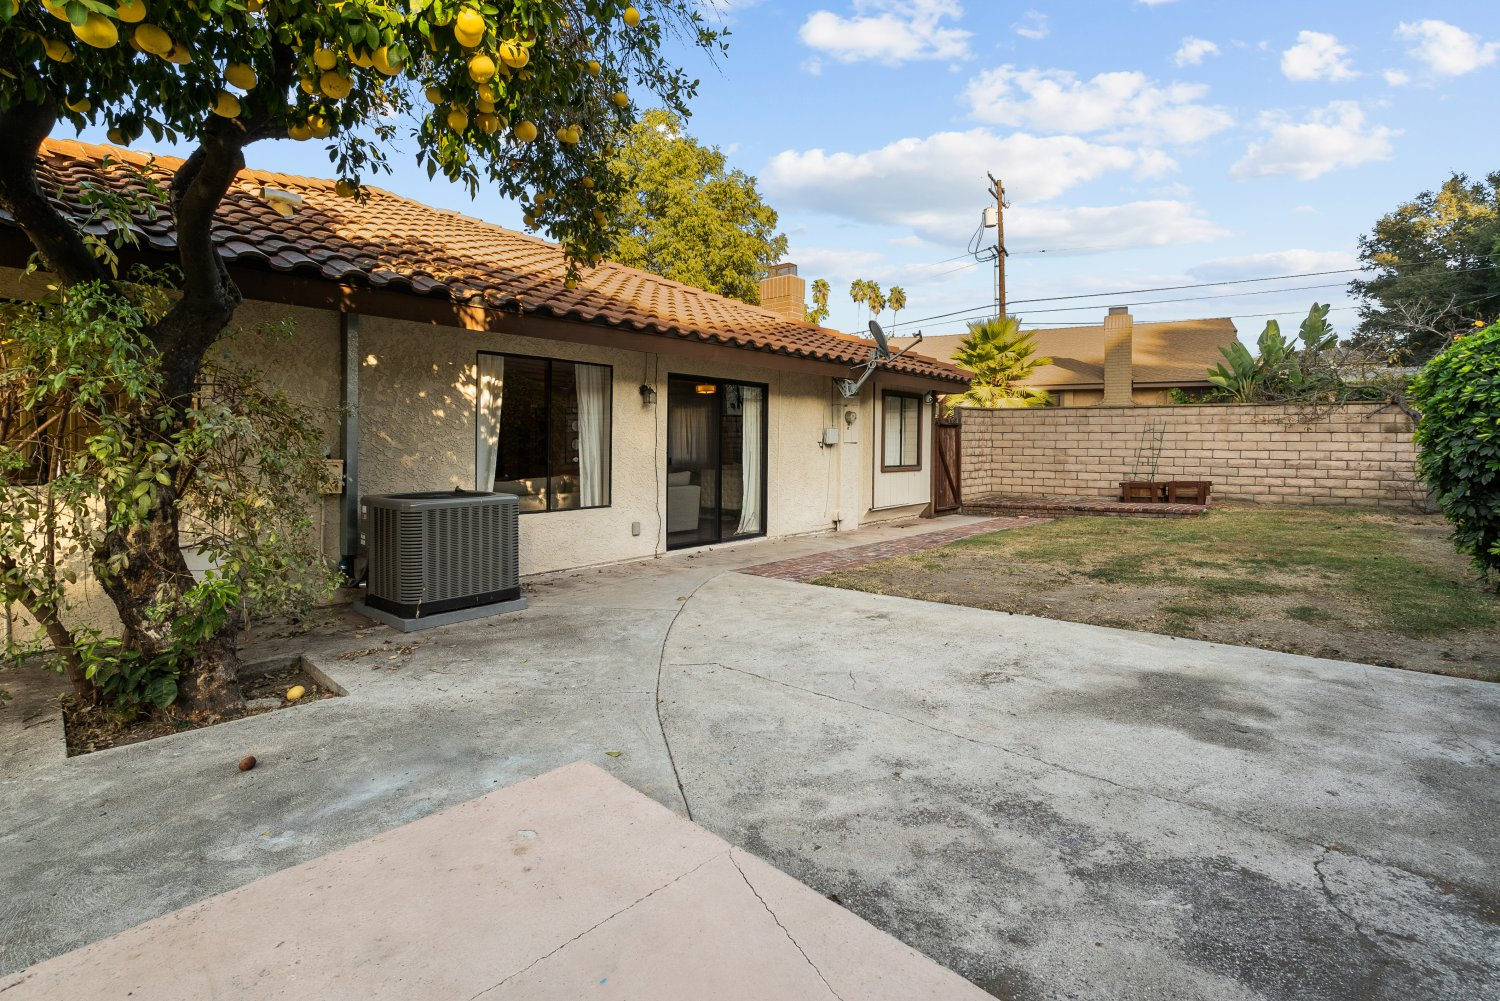 1992 E. Glenoaks Blvd, Glendale, CA 91206 | Photo 27